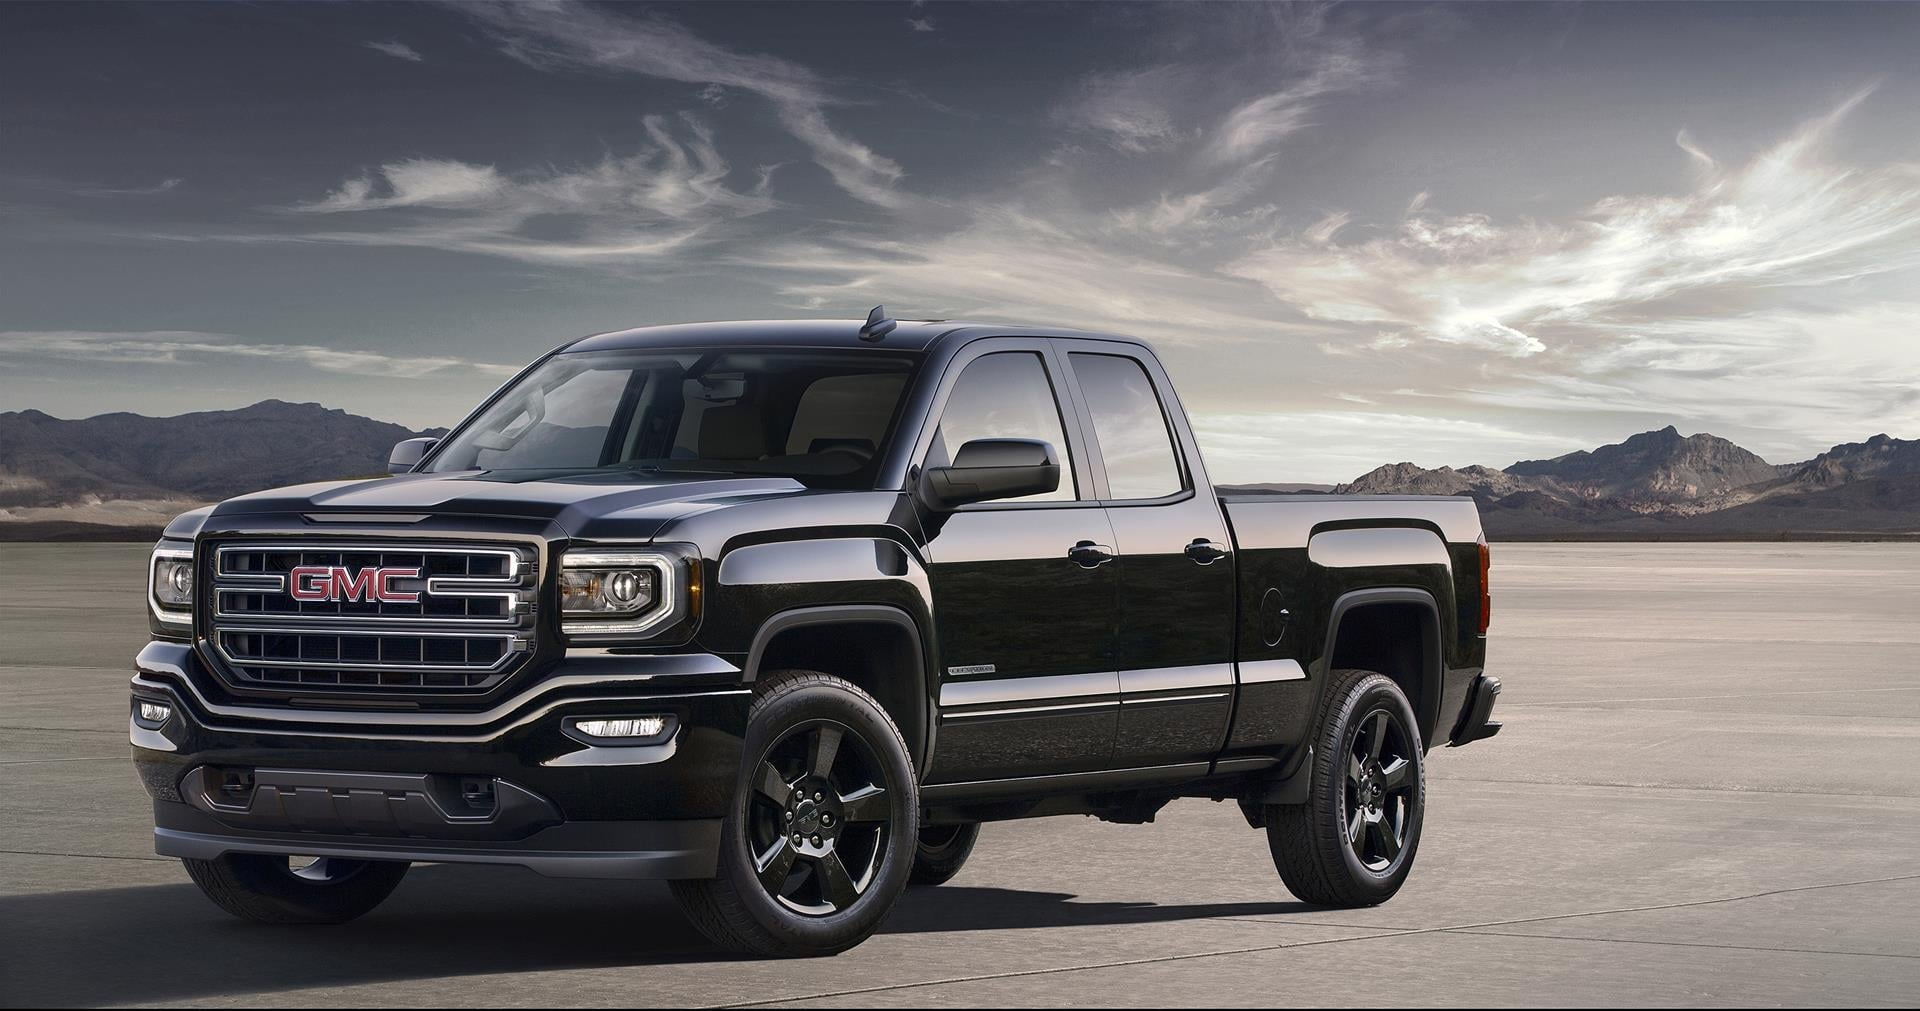 1920x1011 - GMC Wallpapers 19